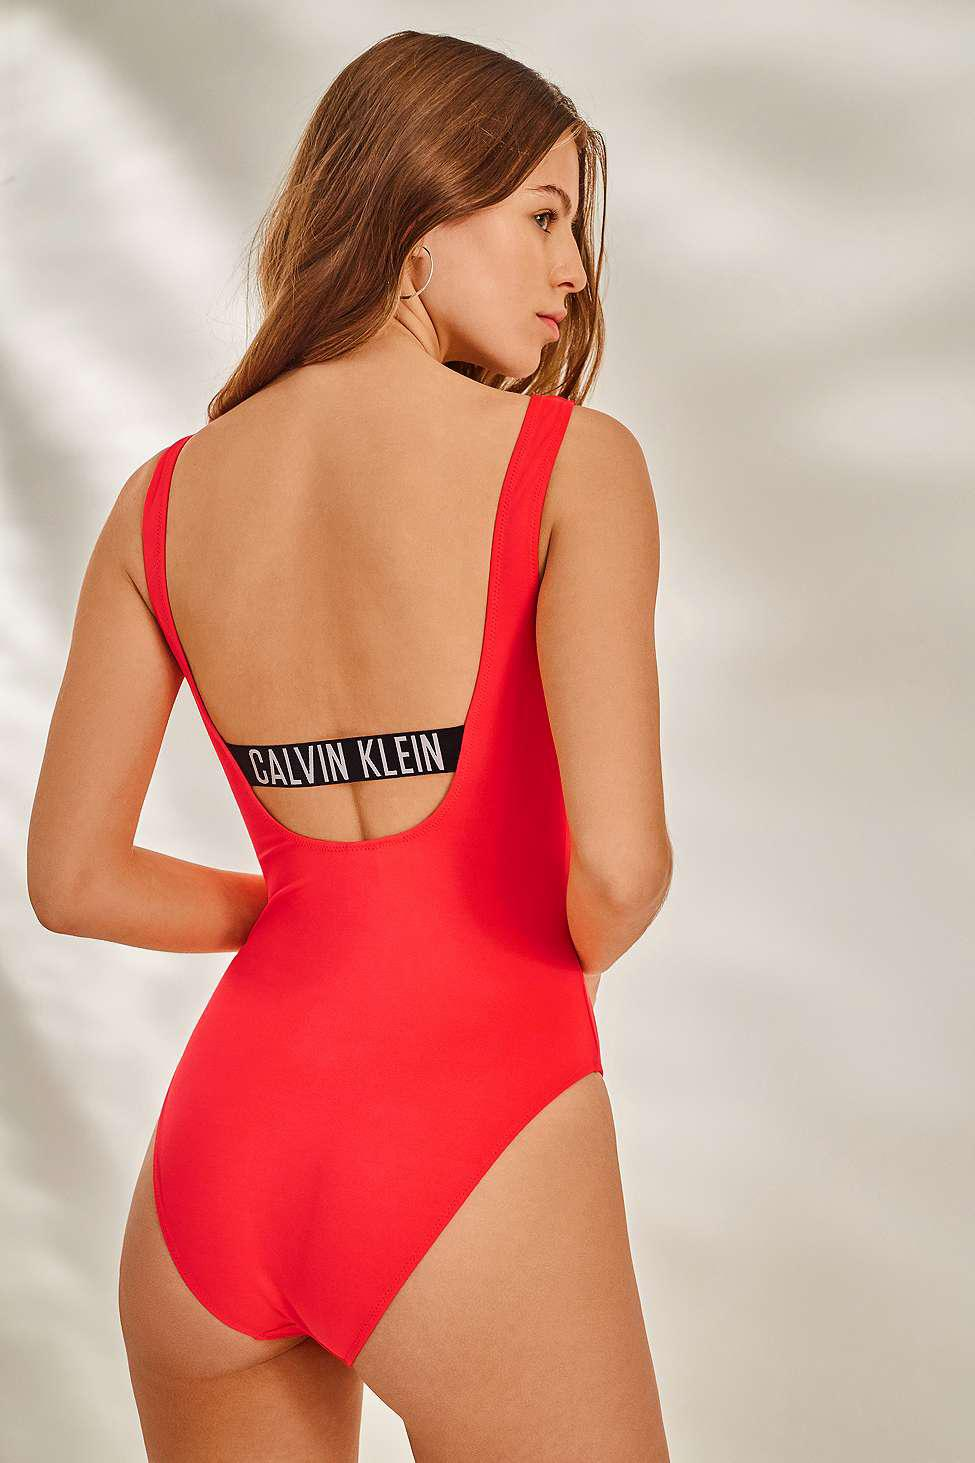 c7098347a6358 Calvin Klein Intense Power Pink Square Scoop One-piece Swimsuit ...